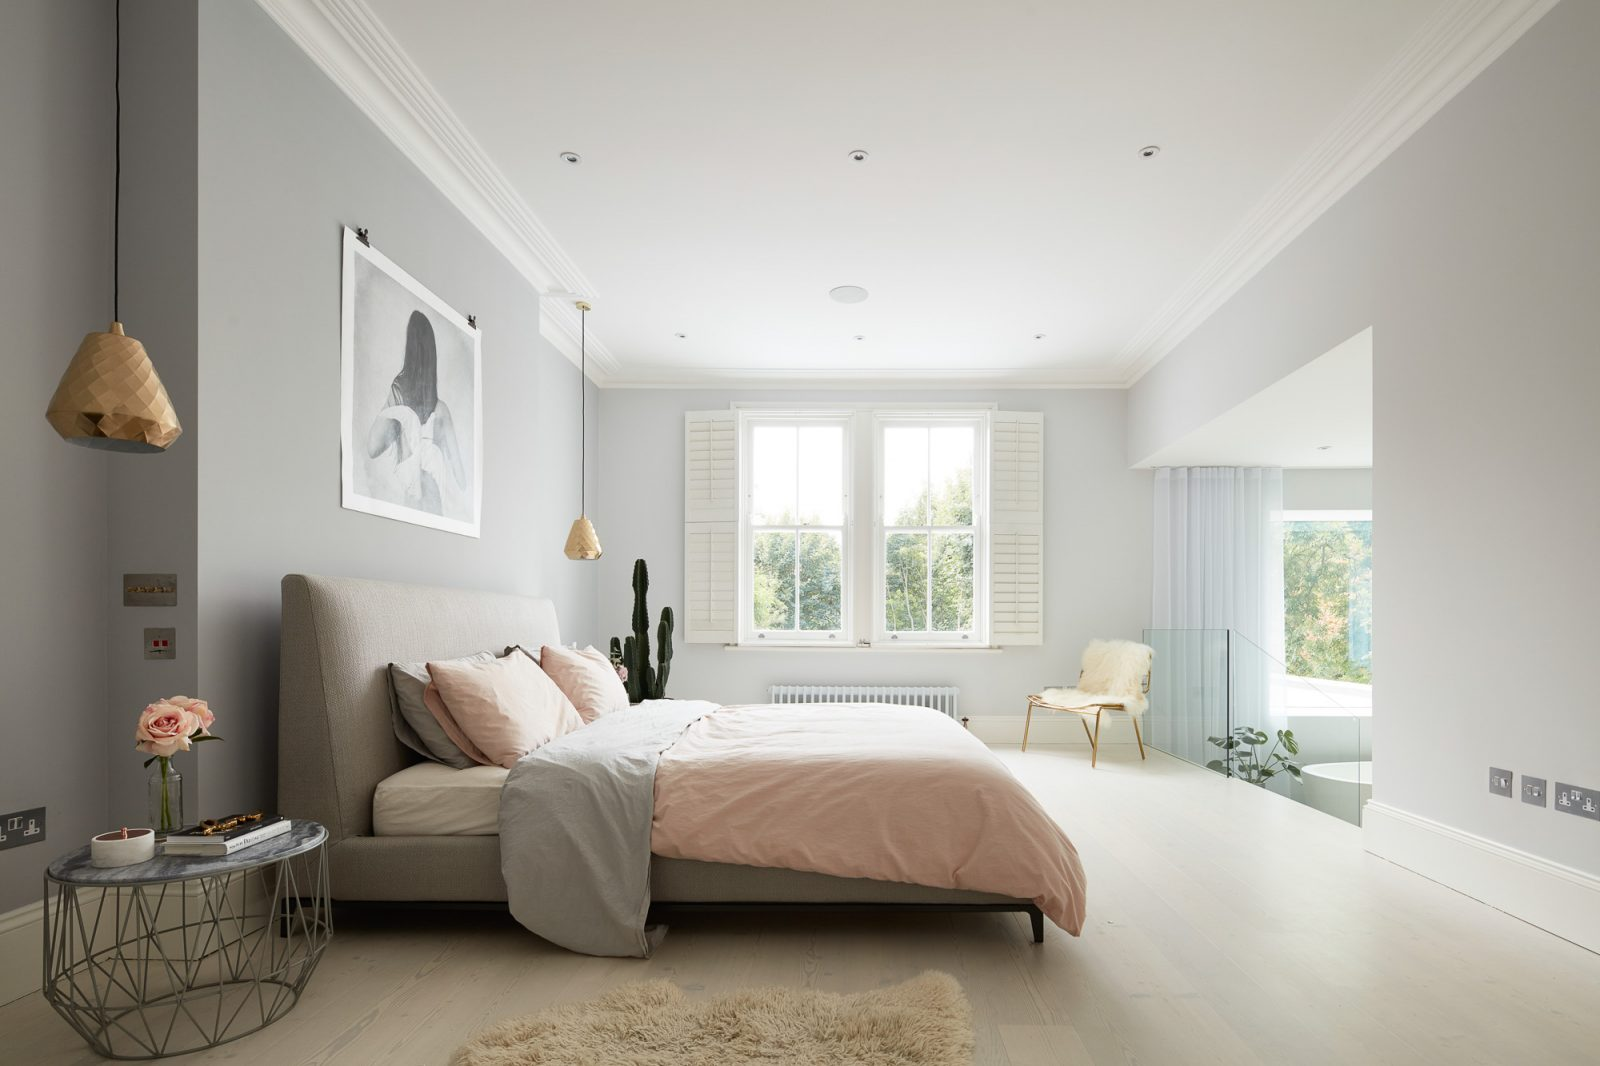 Interiors of ADE project south london, by Matt Clayton interiors photographer